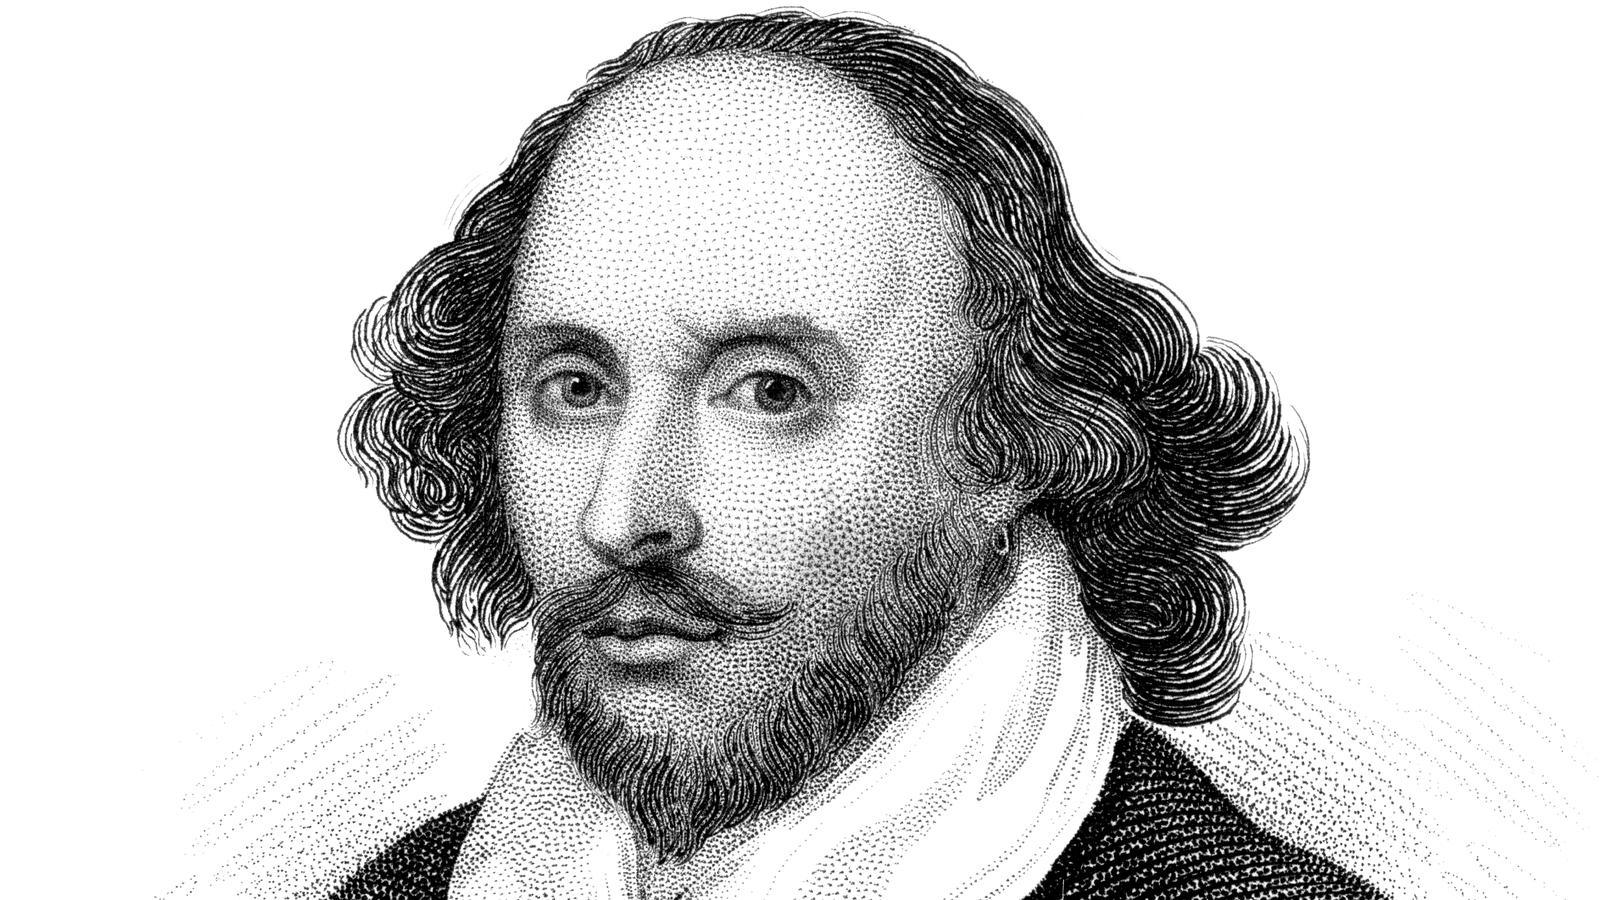 william shakespeares universal appeal Shakespeare's universal appeal april 23, 2018 was (probably) shakespeare's 454th birthday -- a nd it was also the 402nd year anniversary of his death while there is some uncertainty in knowing when his real birthday was, the day of his death is undisputed.